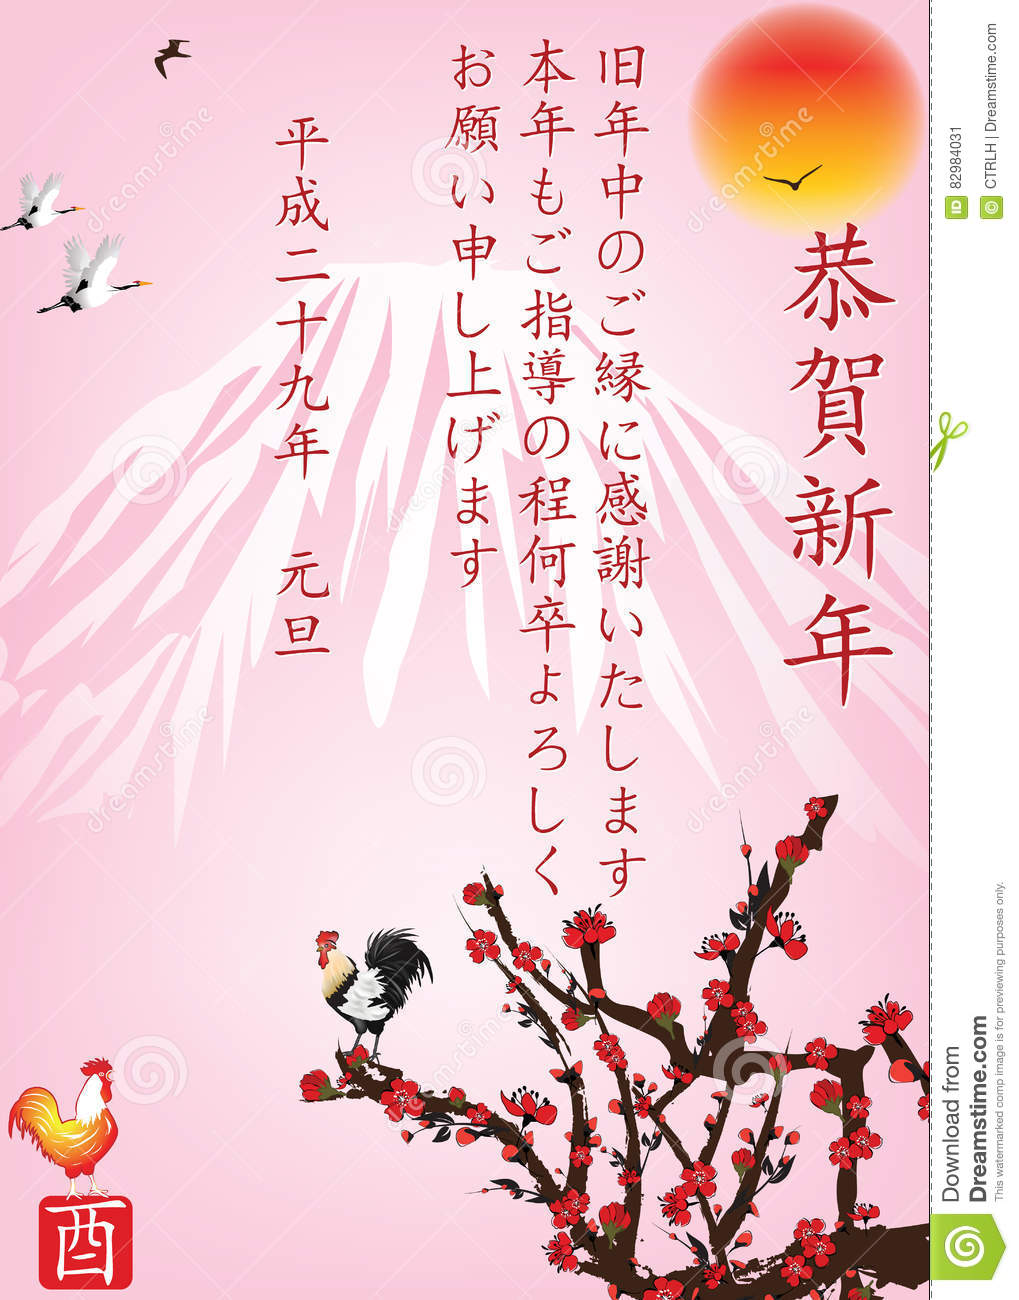 Japanese new year greeting card for a boss leader stock download japanese new year greeting card for a boss leader stock illustration illustration m4hsunfo